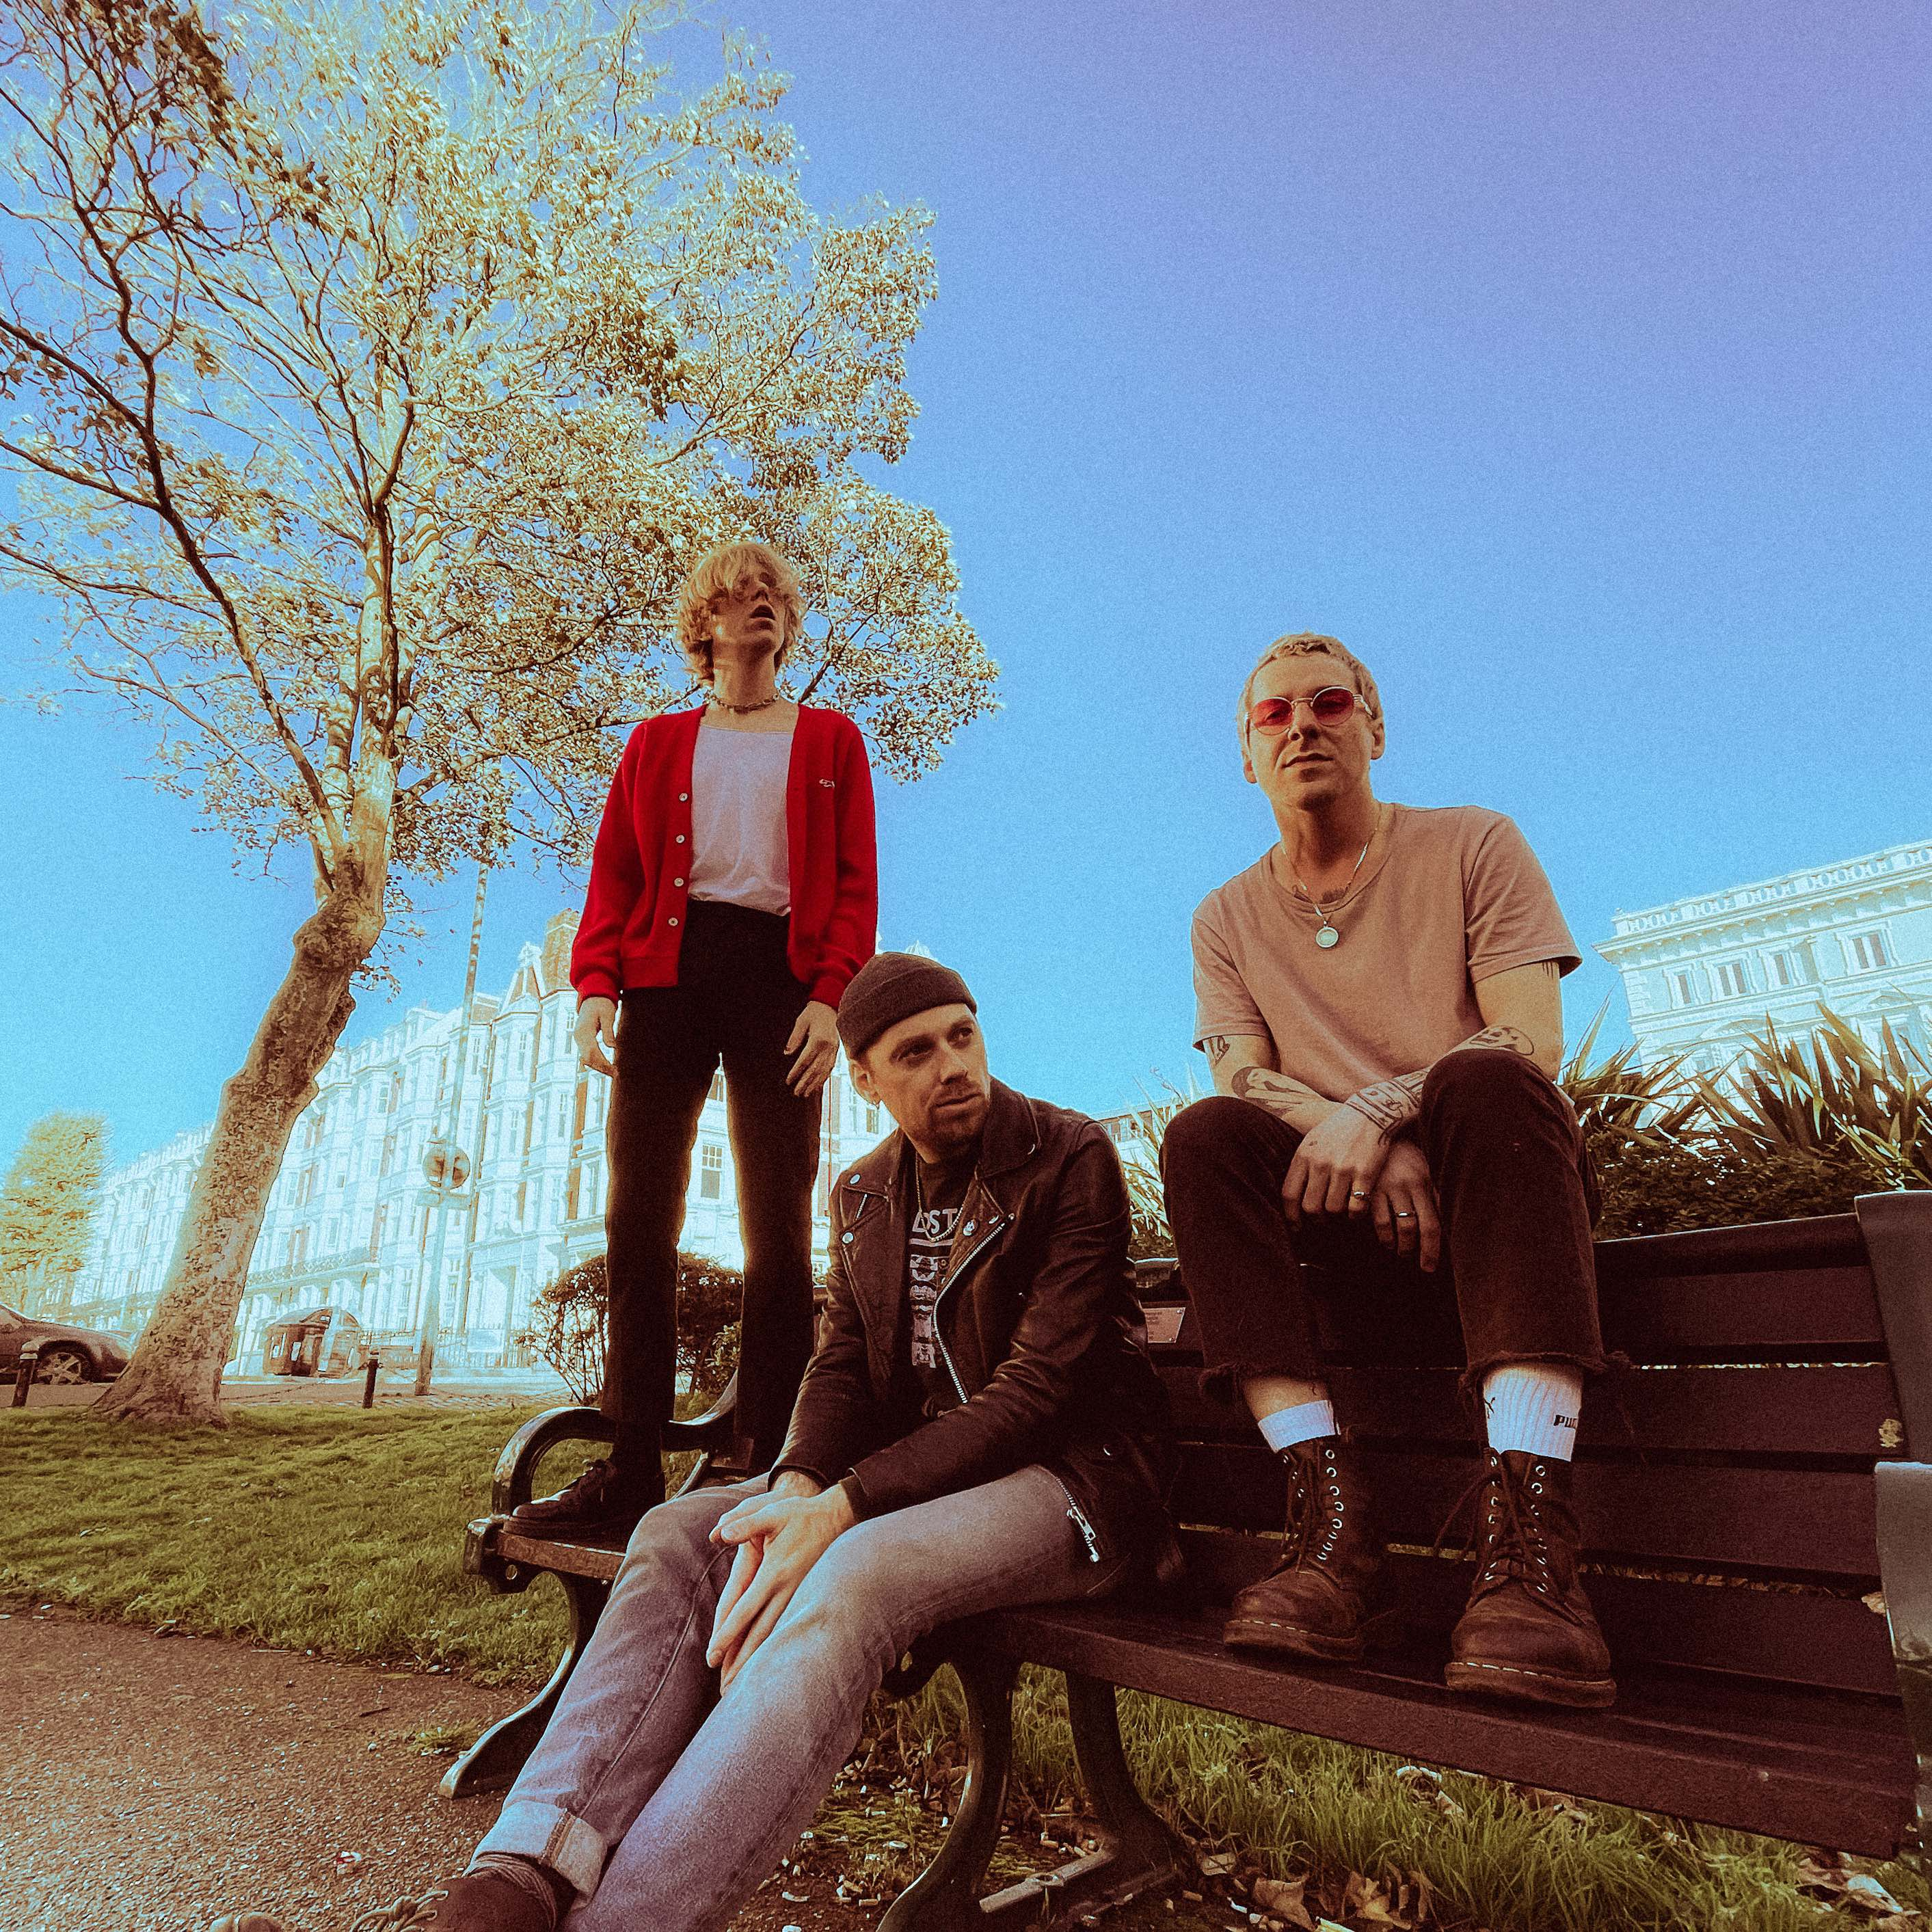 The XCERTS – So No One Told You Life Was Going To Be This Way